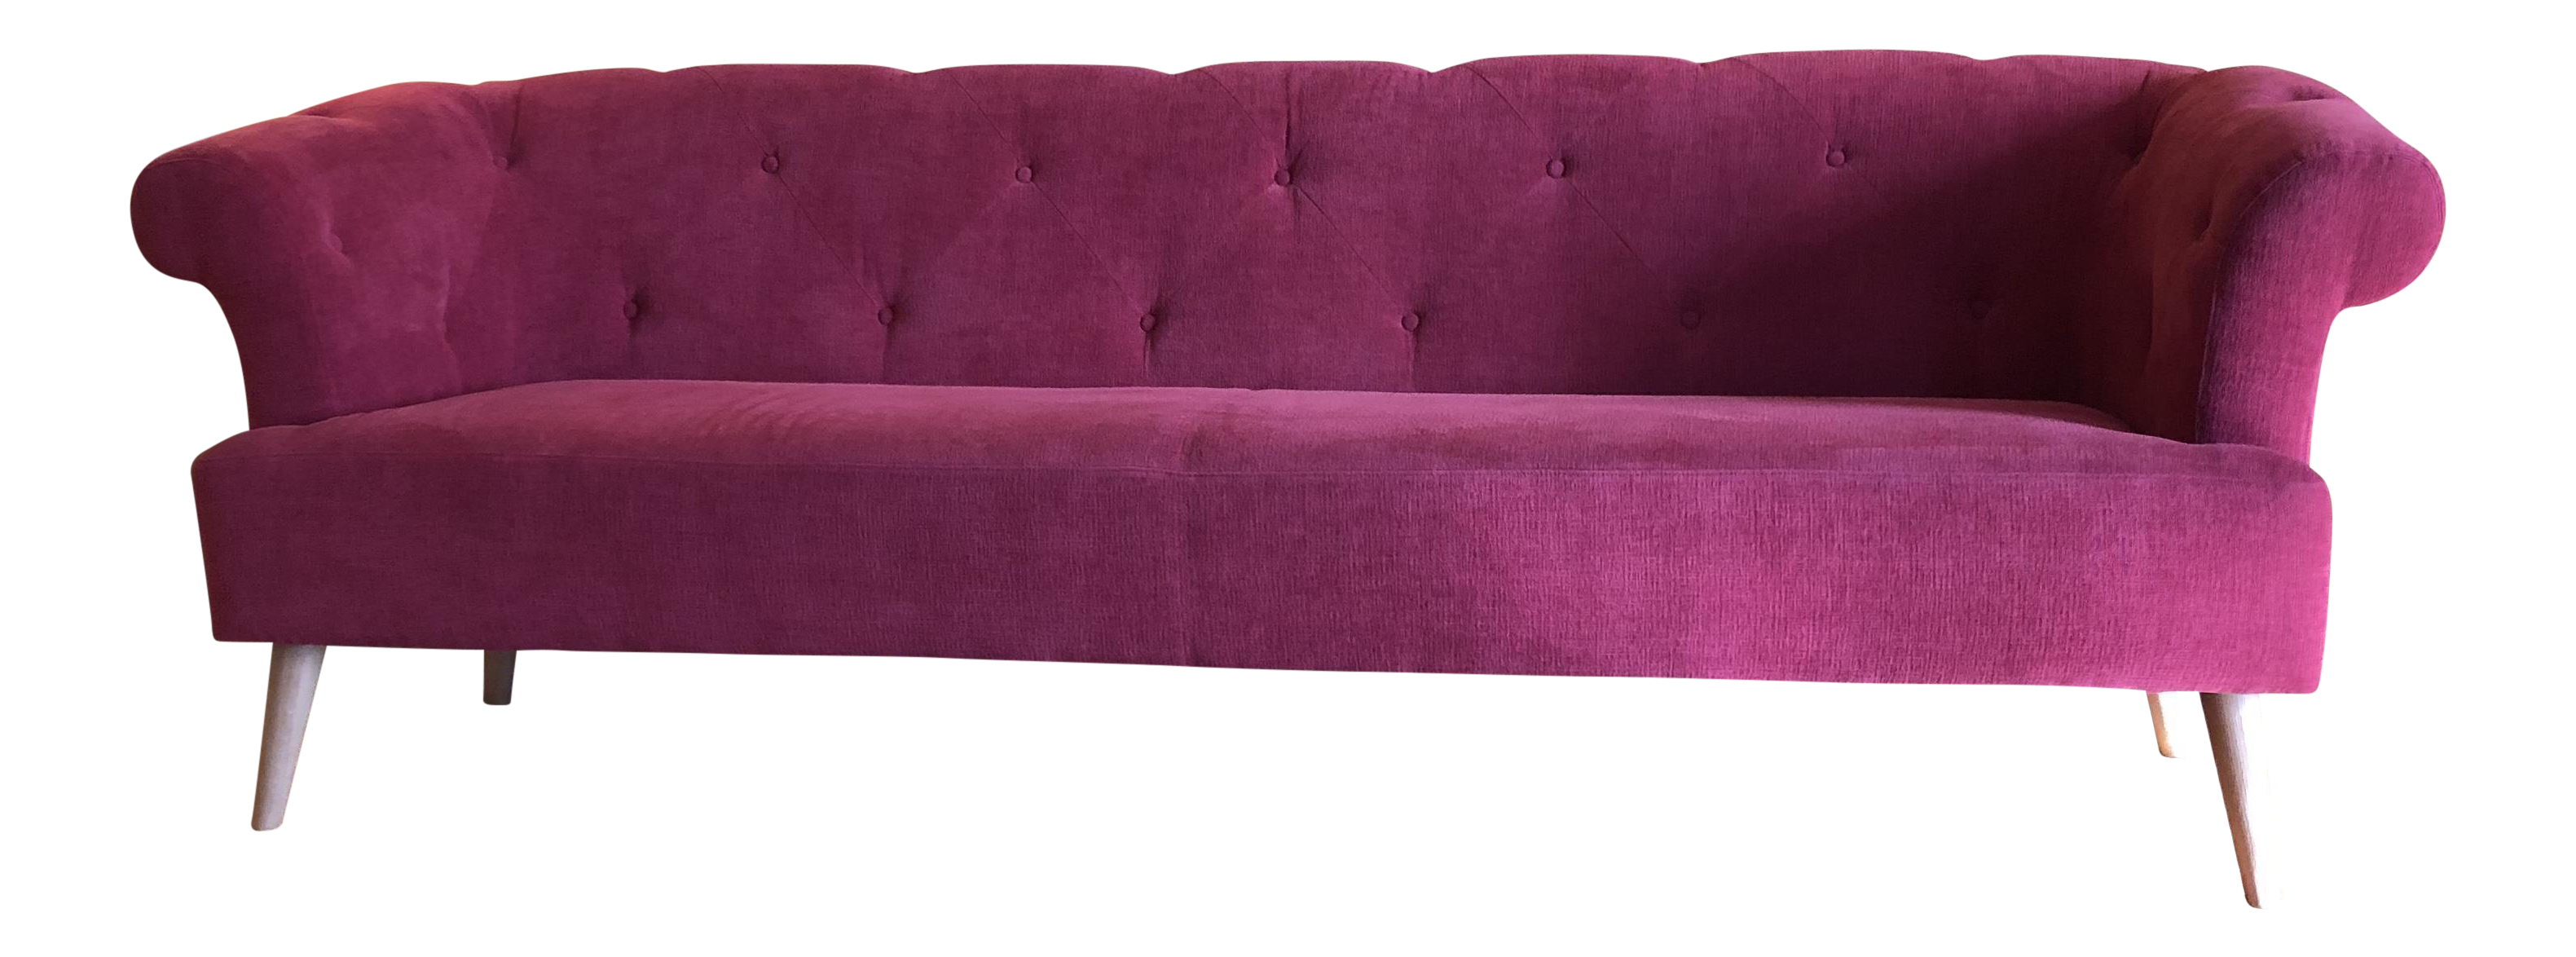 Sarreid Ltd. Burgundy Red Tufted Sofa